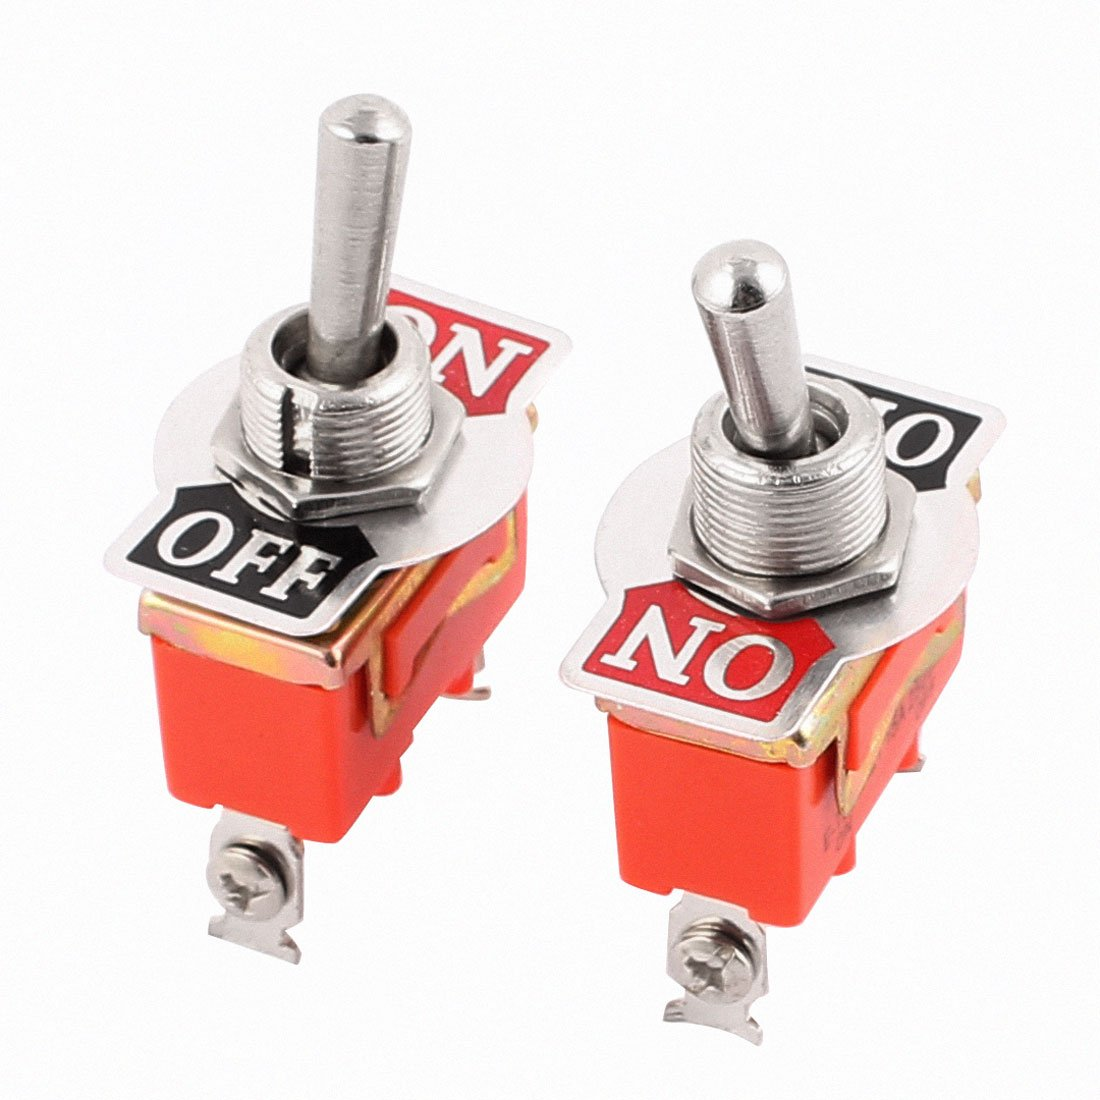 sourcingmap® 2Pcs AC 250V 15A ON/OFF 2 Position SPDT Latching Toggle Switch Orange a16032400ux0938